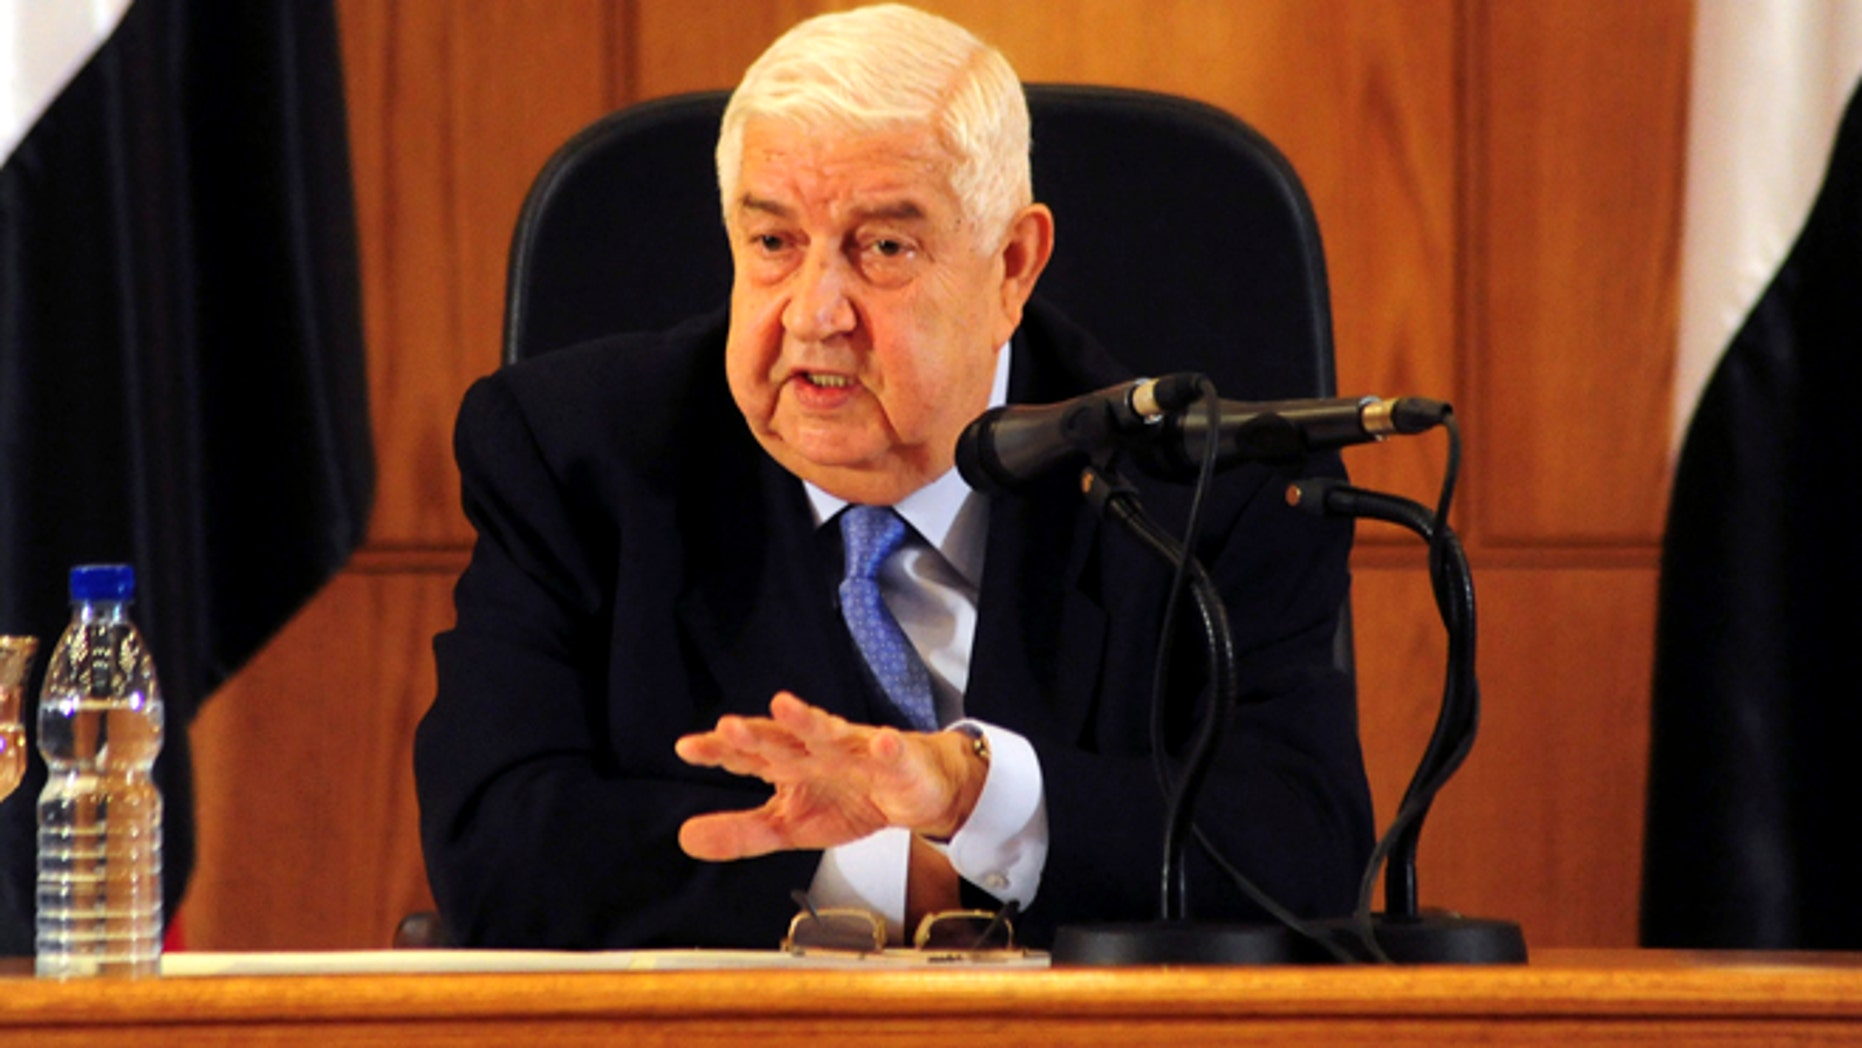 August 25, 2014: In this photo released by the Syrian official news agency SANA, Syrian Foreign Minister Walid al-Moallem speaks during a press conference, giving the first public comments by a senior Assad official on the threat posed by the Islamic State group, in Damascus, Syria. Al-Moallem warned the U.S. not to conduct airstrikes inside Syria against the Islamic State group without Damascus consent, saying any such attack would be considered an aggression. Al-Moallem also said that Syria is ready to work with regional states and the international community amid the onslaught of Islamic militants there and in Iraq, adding that the Syrian government is a crucial partner in the war on terror.